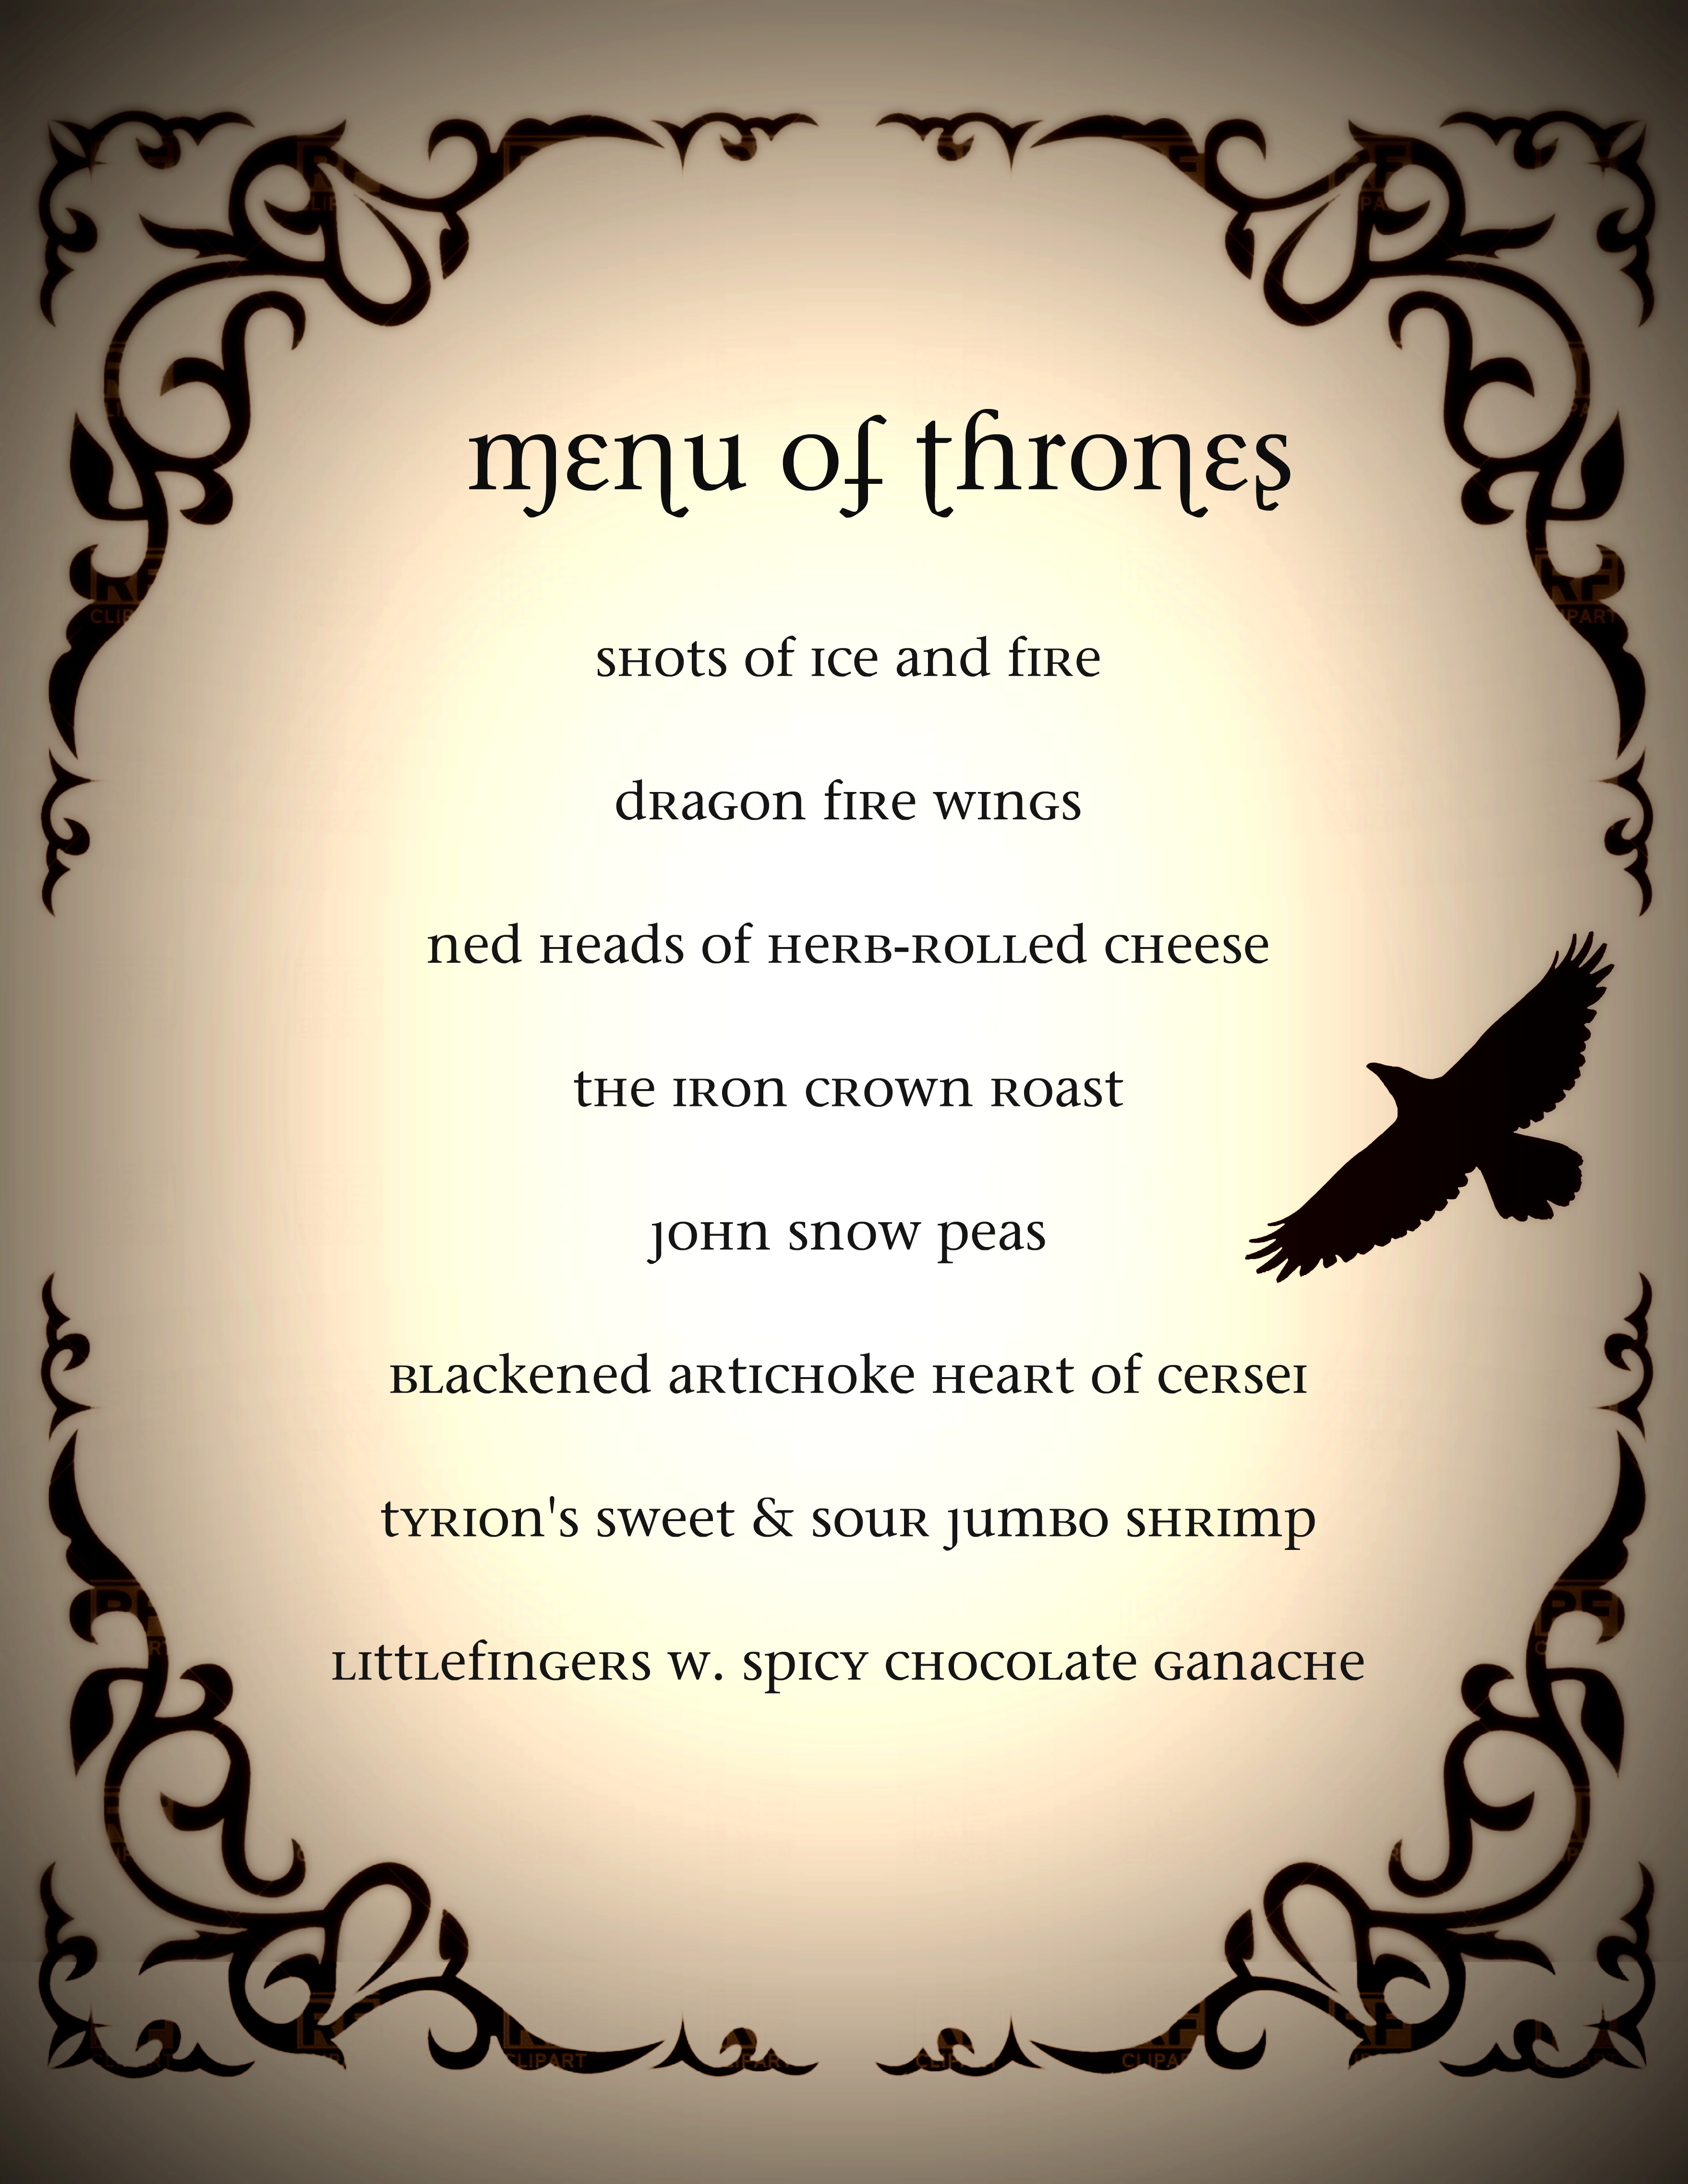 Game of Thrones Dinner Party | Welcome to Pastiche Events and PAPERandPASTICHE.etsy.com